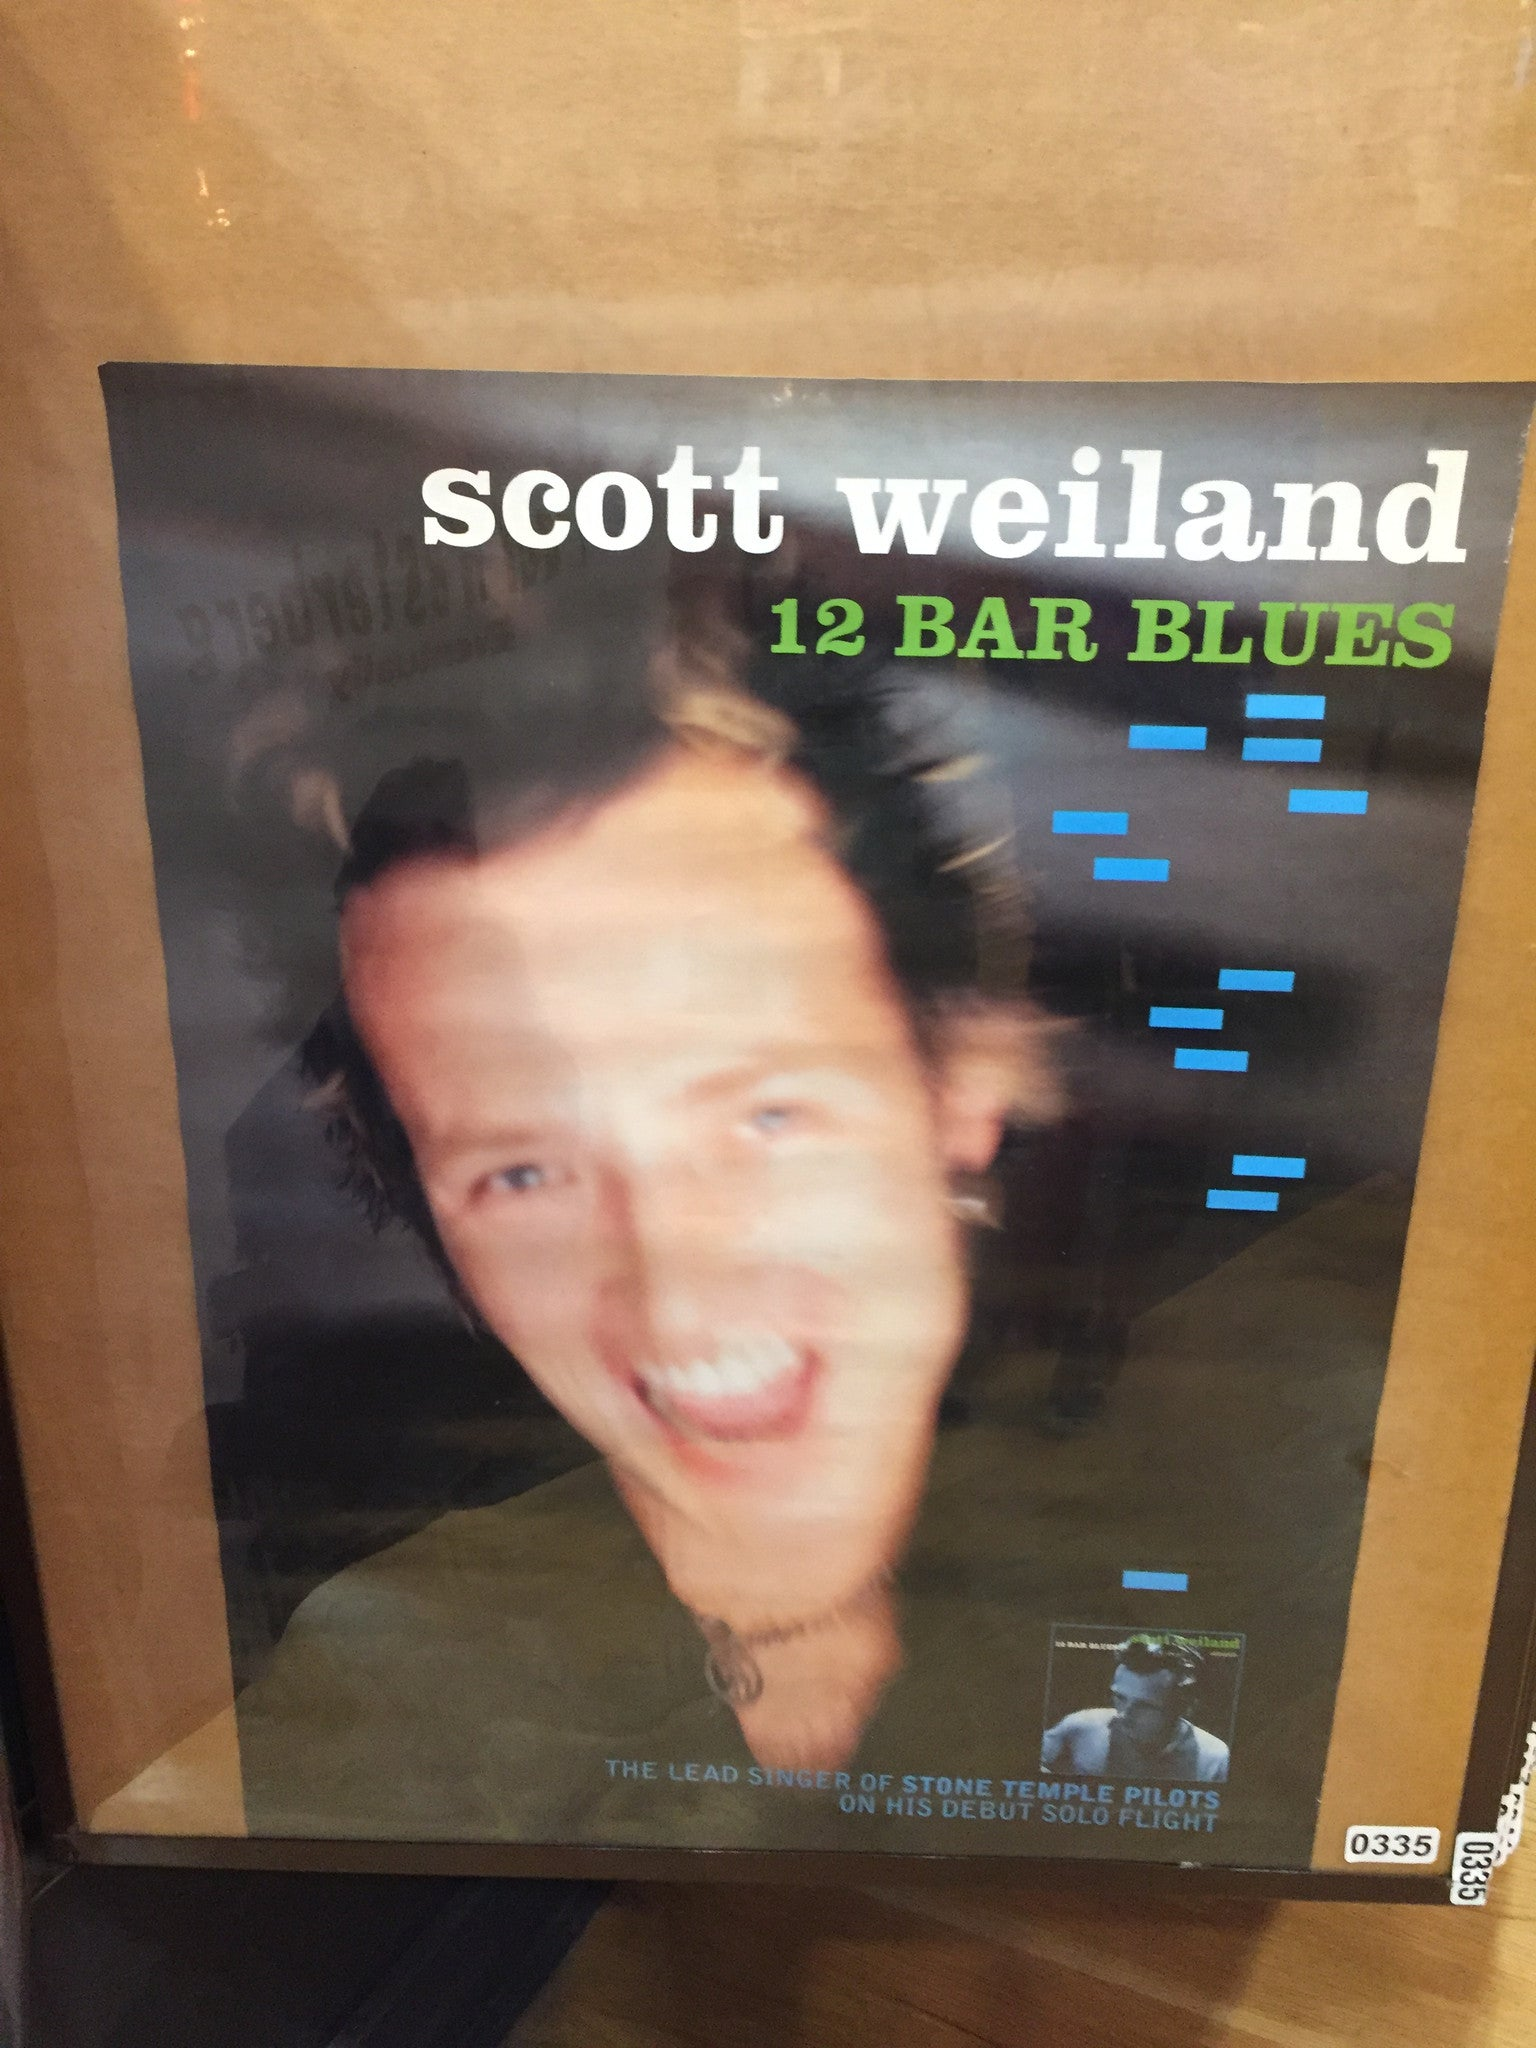 Scott Weiland – 12 Bar Blues - 1998 - 0335 Poster